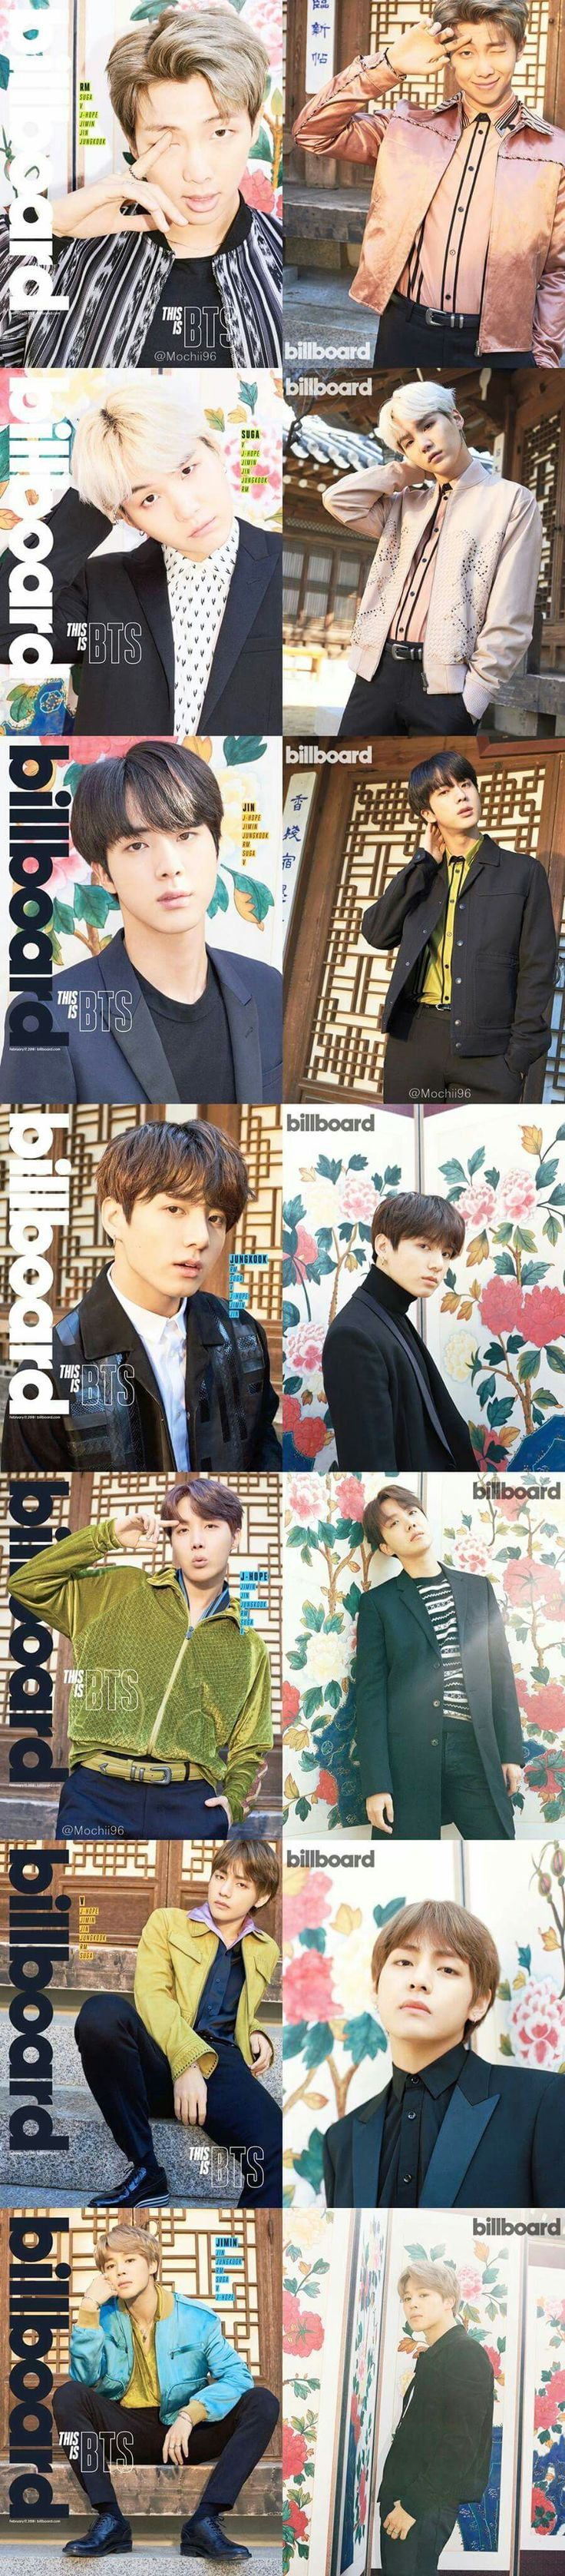 #BTS X BILLBOARD! BTS Speaks Out In Seoul: The K-Pop Megastars Get Candid About Representing a New Generation! ♡